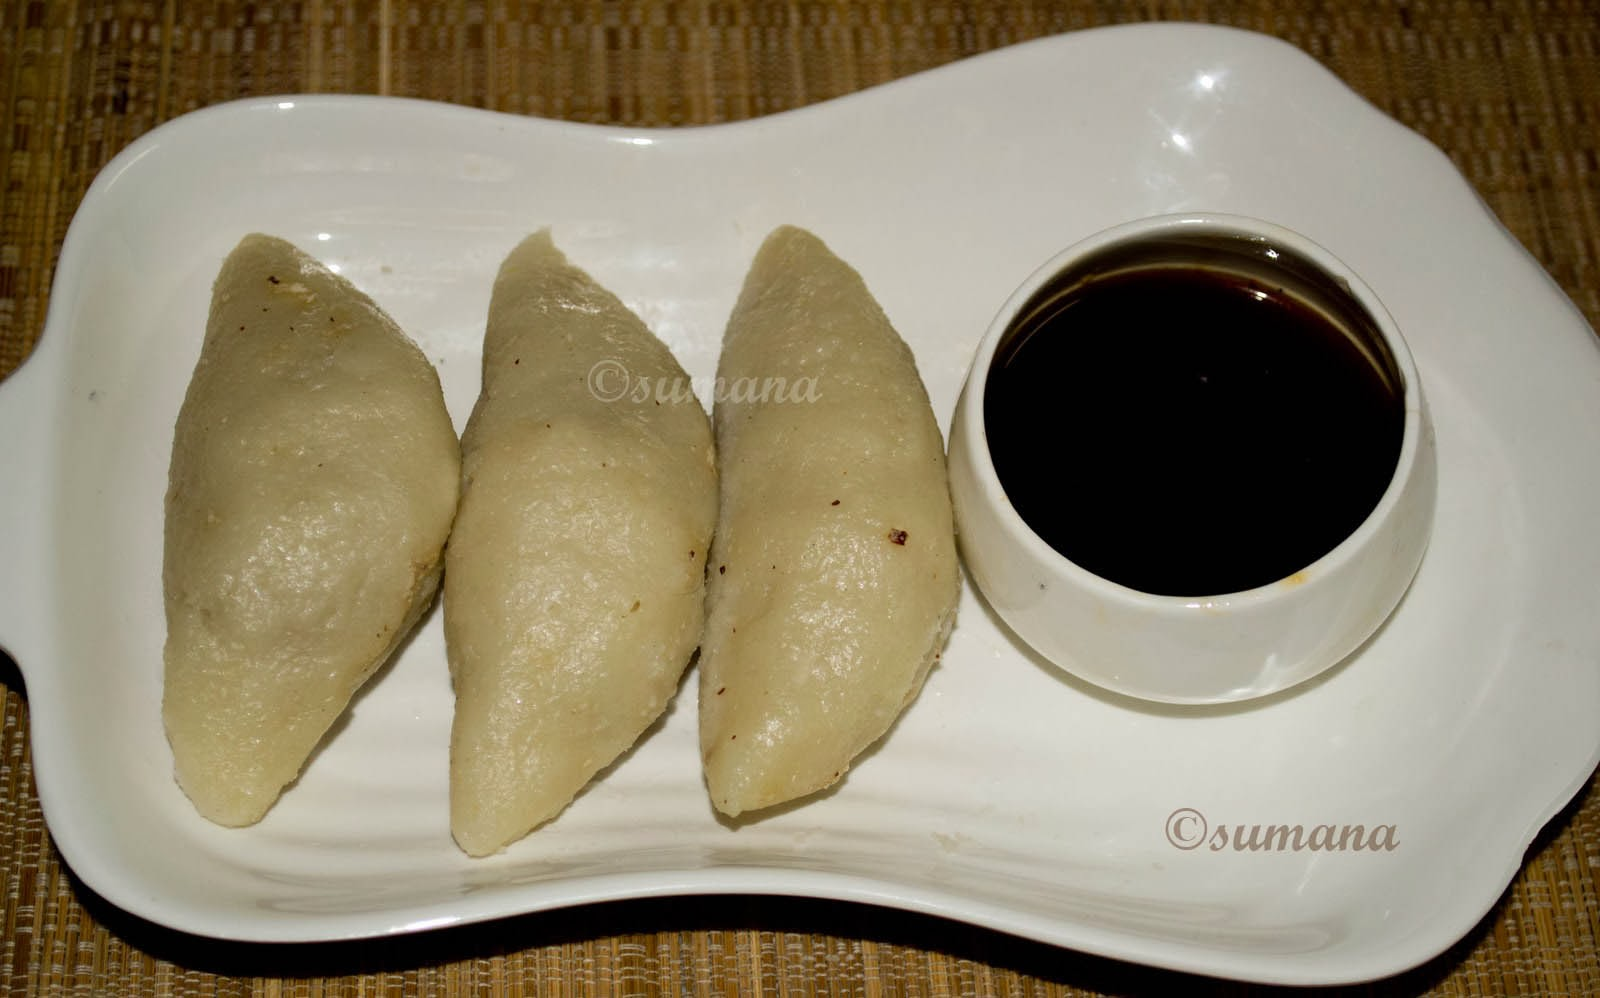 vapa pithe or puli pithe is a dumpling made of rice flour and coconut made by Bengalis during Poush Sankranti